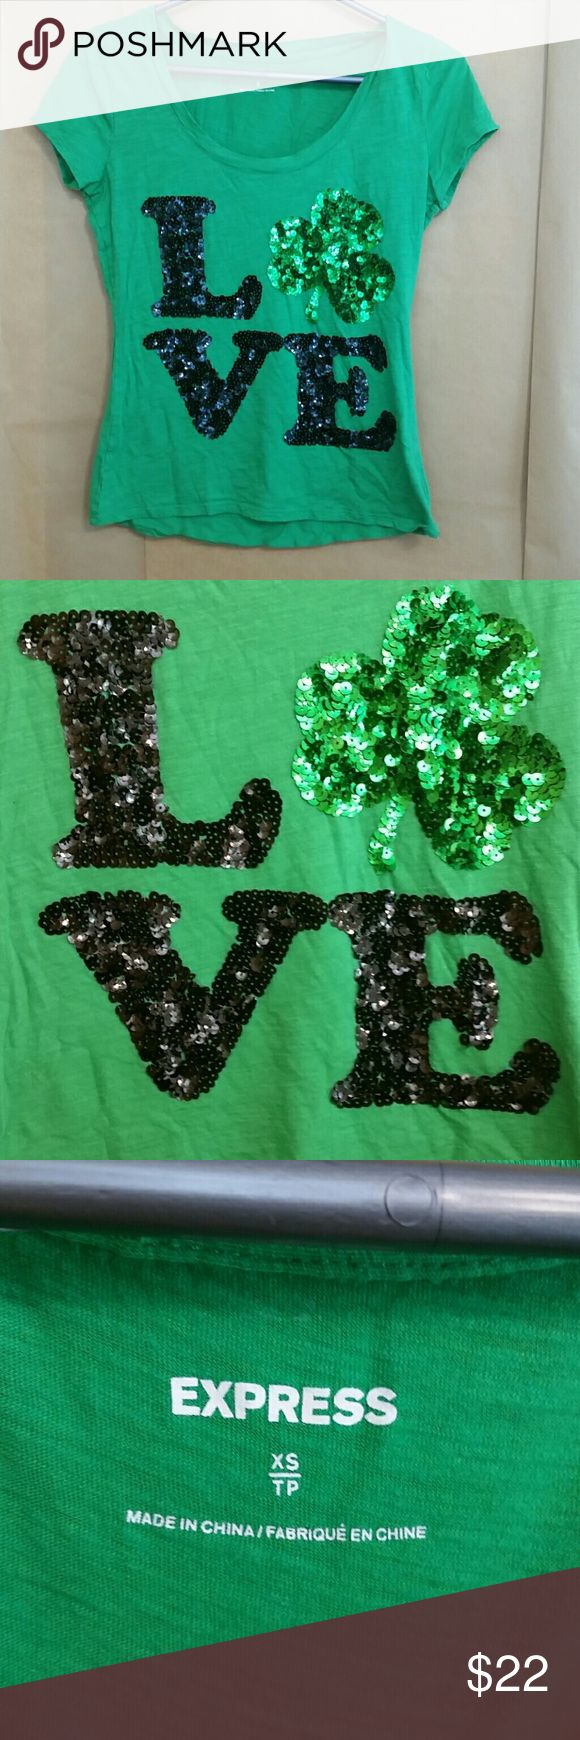 Express green Saint Patrick's Day sequin tee sz XS Kiss me, I'm Irish! Cute kelly green short sleeve tee with black and green sequin LOVE design from Express. Soft cotton blend. Excellent used condition with no pulls or missing sequins! Size XS. Happy Saint Patrick's Day! Express Tops Tees - Short Sleeve